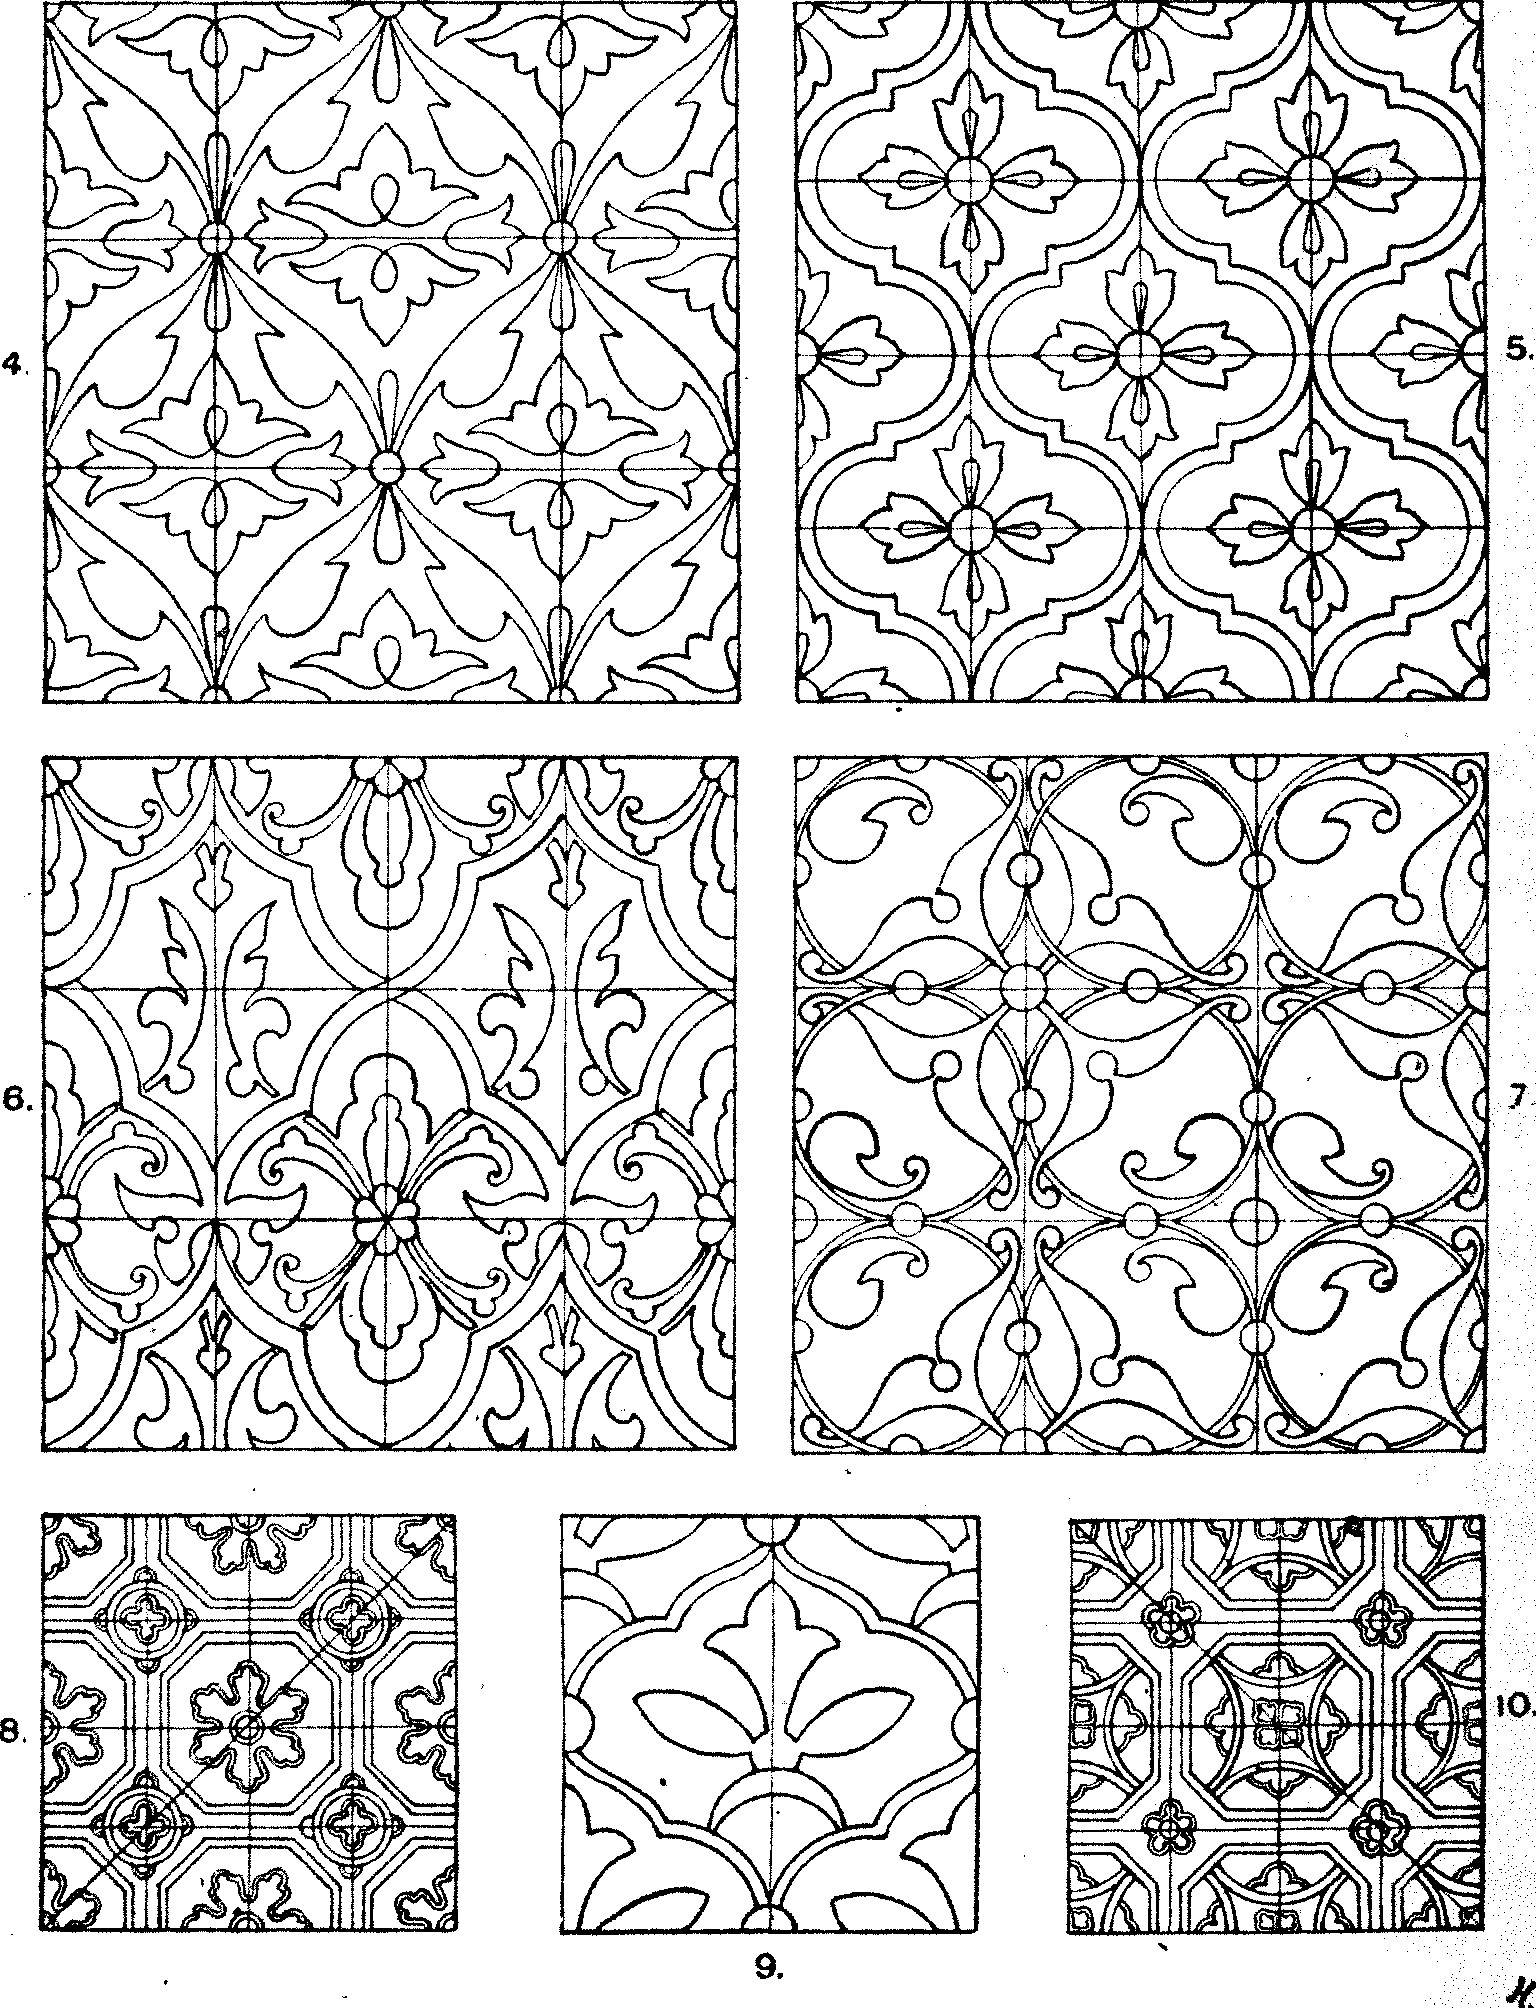 Franz Sales Meyer, Handbook of ornament; a grammar of art, industrial and architectural designing ..., 1900, flic.kr/p/oeXqFZ